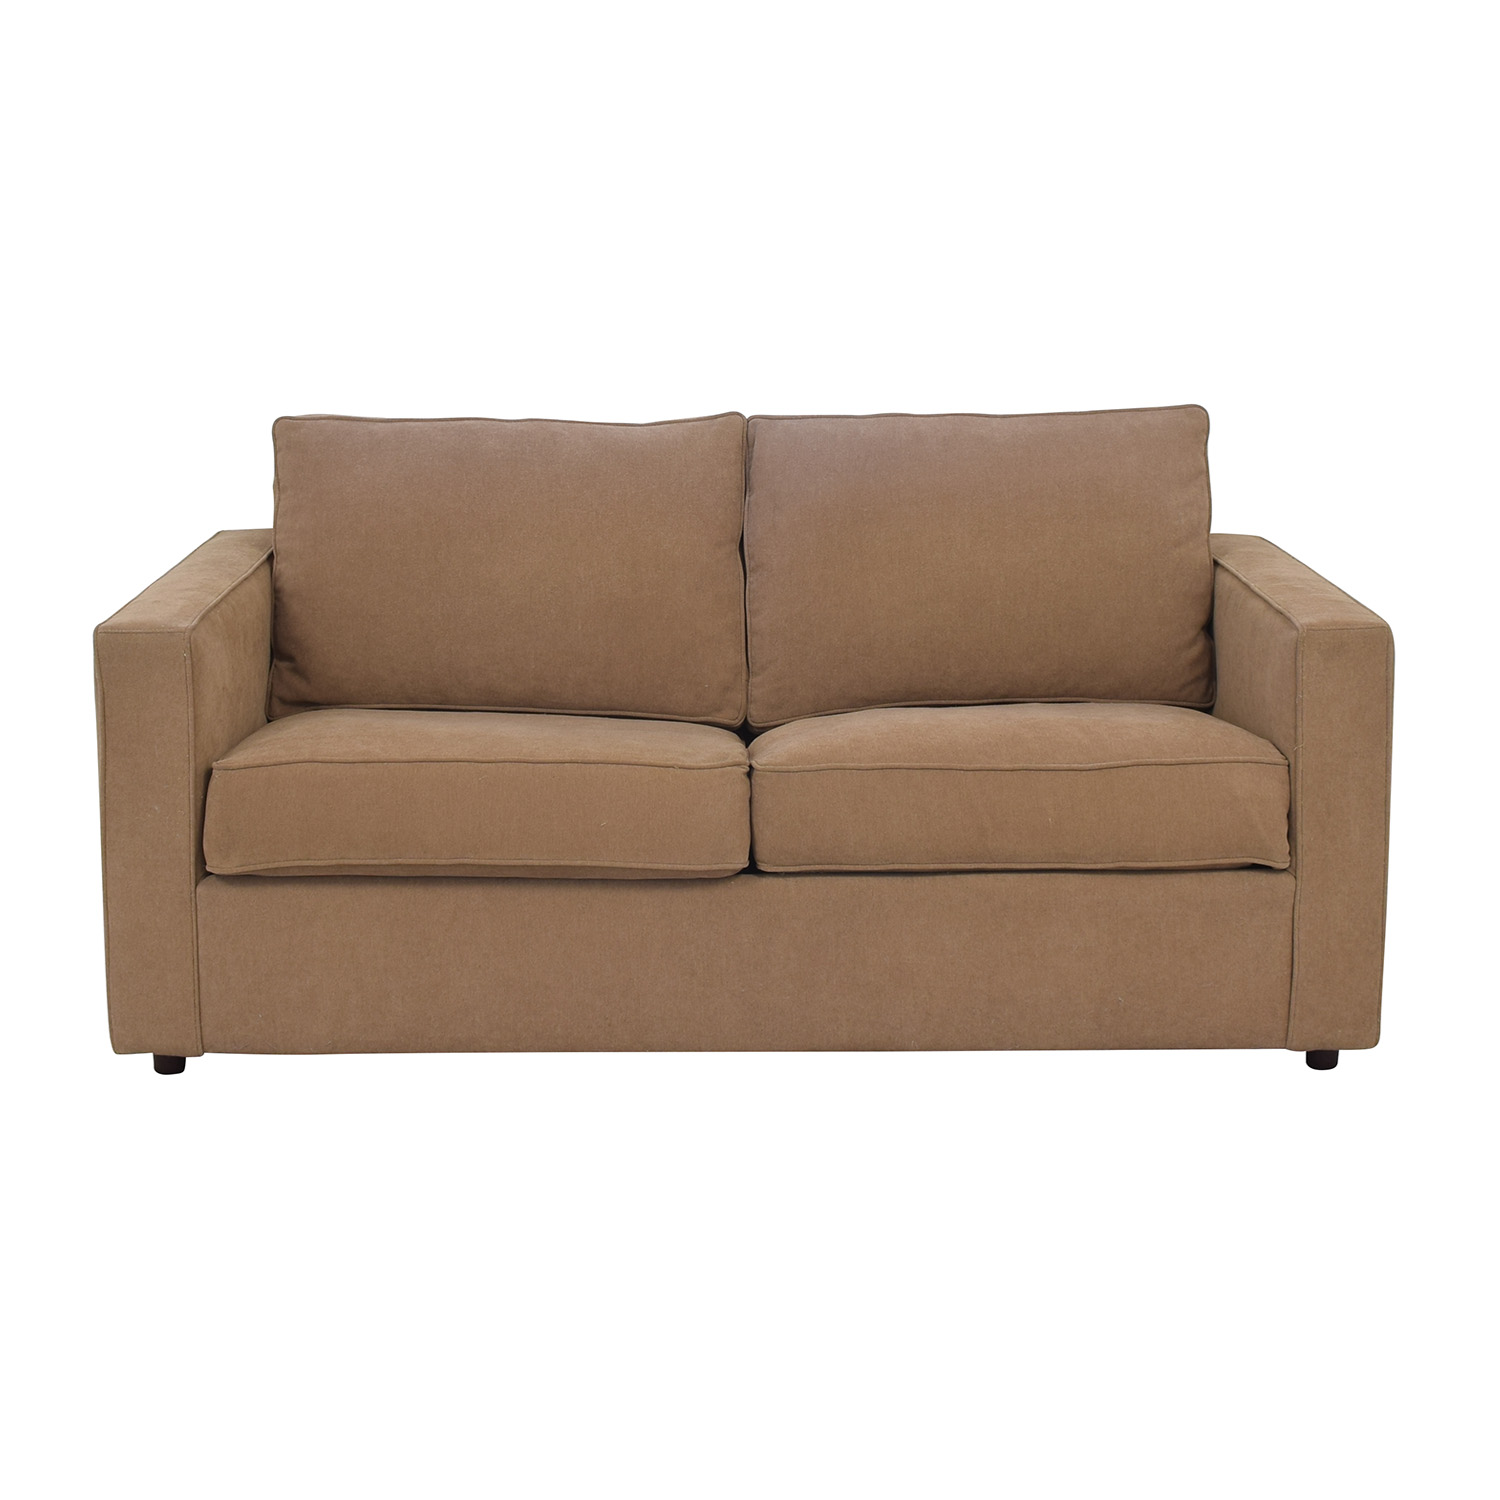 McCreary Sleeper Sofa McCreary Modern